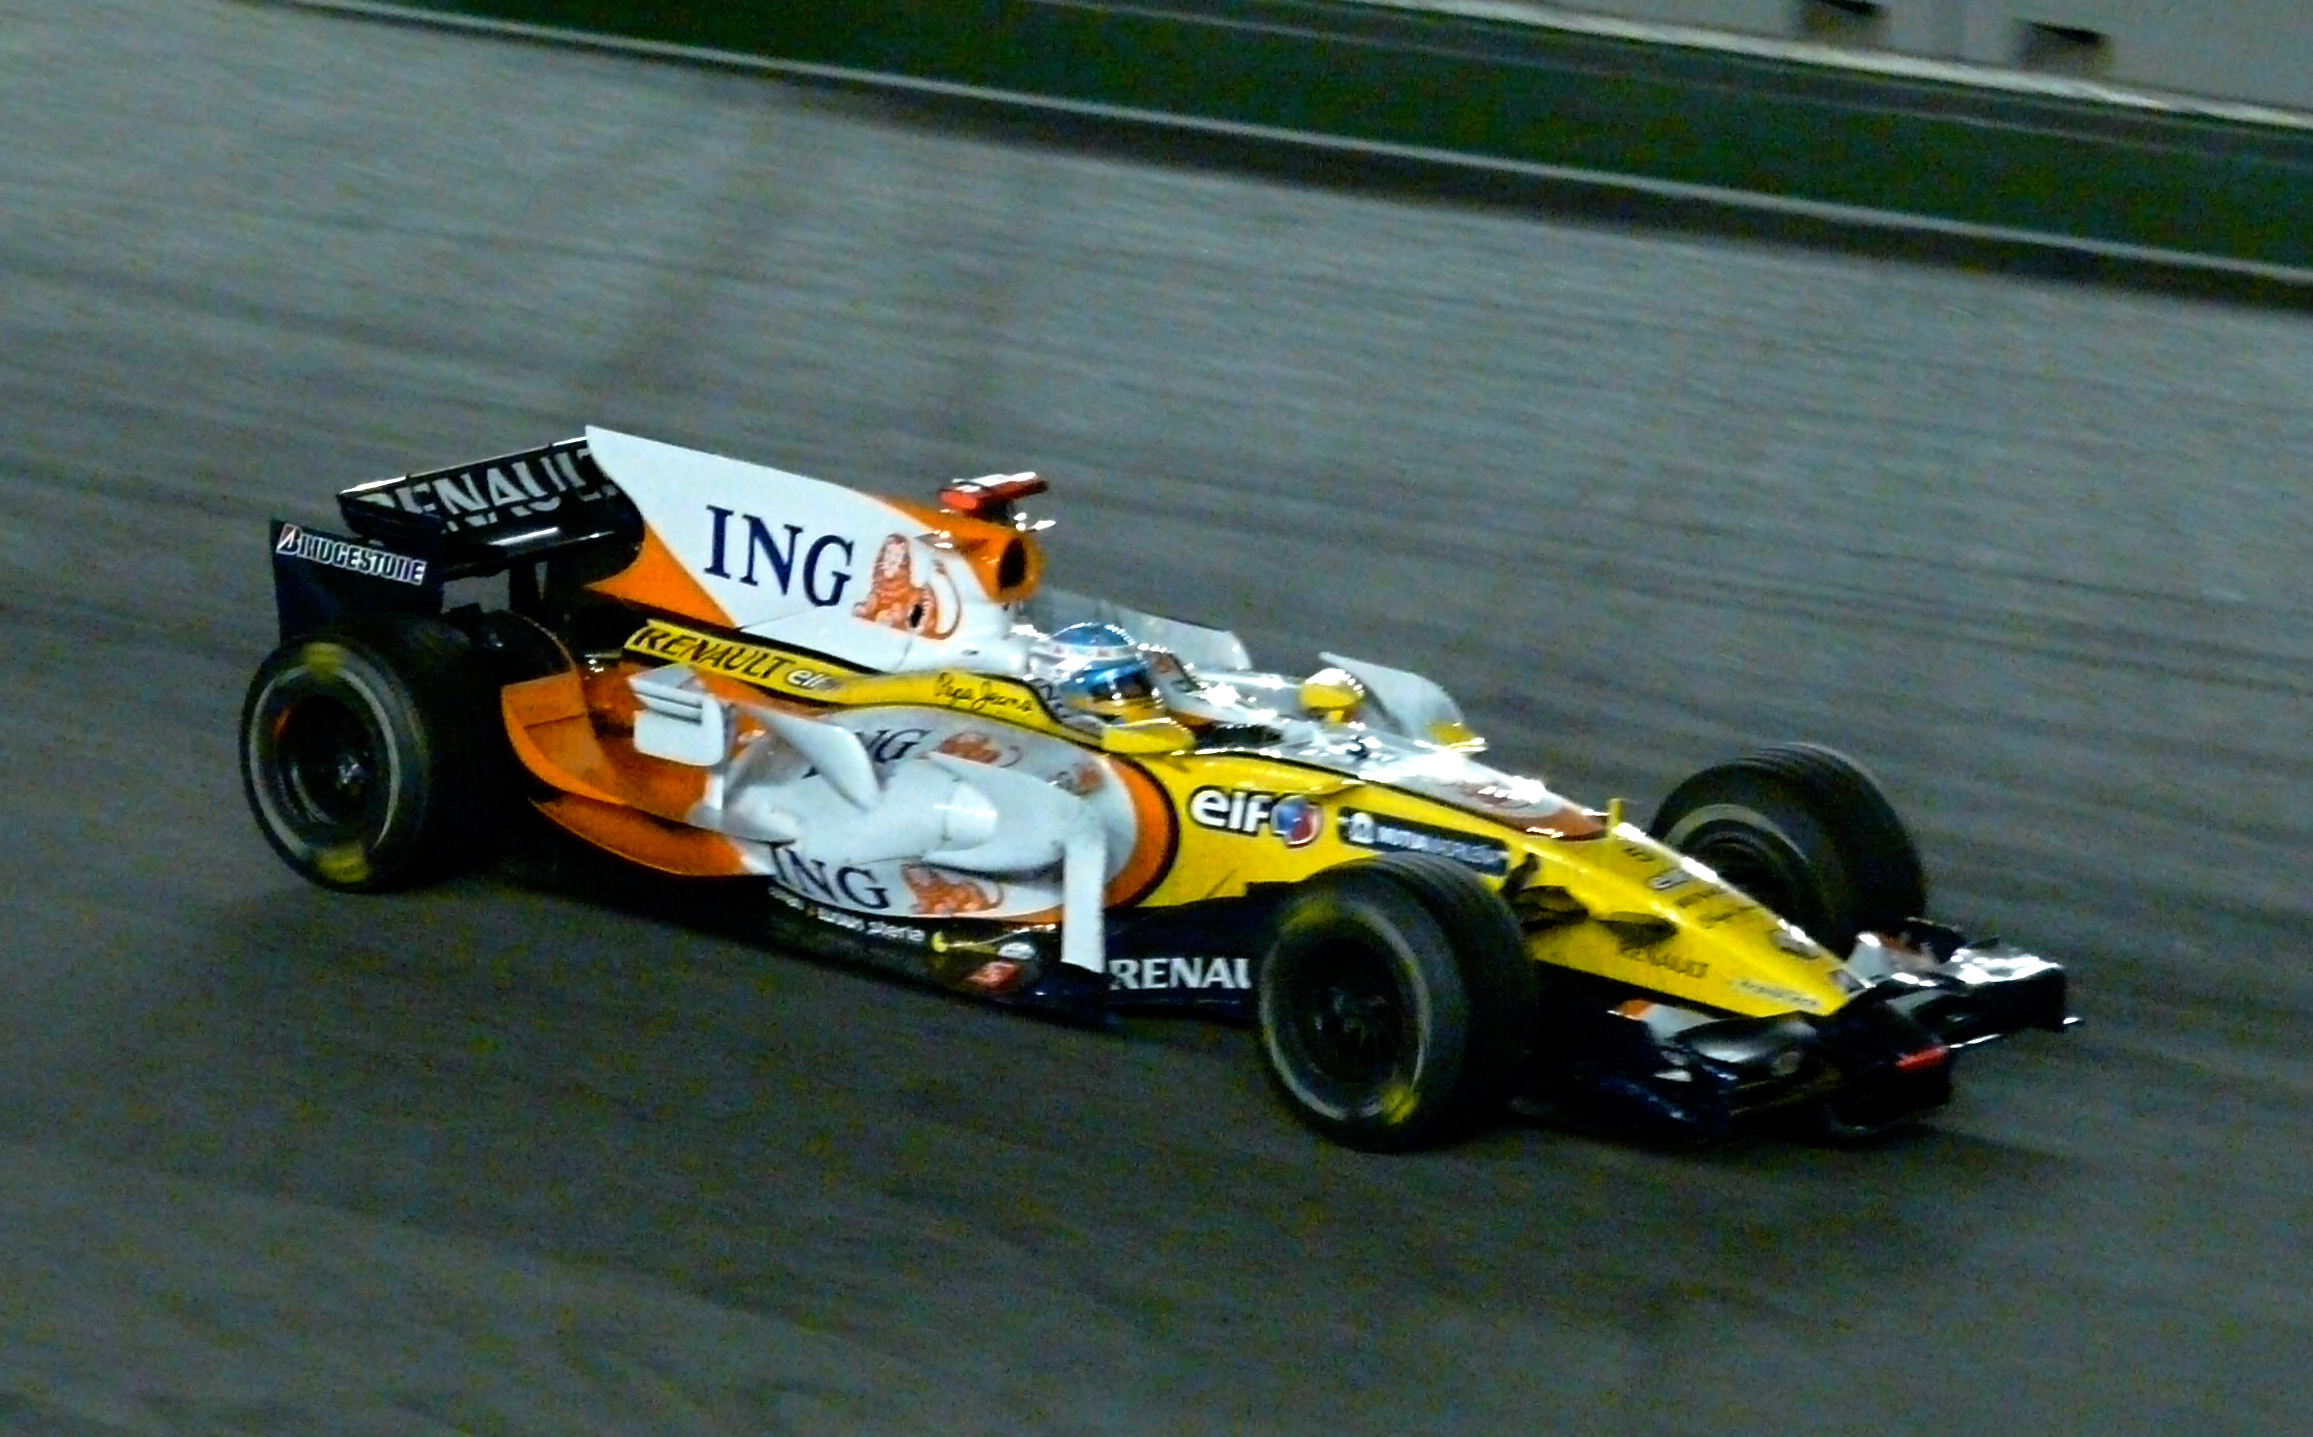 Singapore_grand_prix_2008_alonso_win